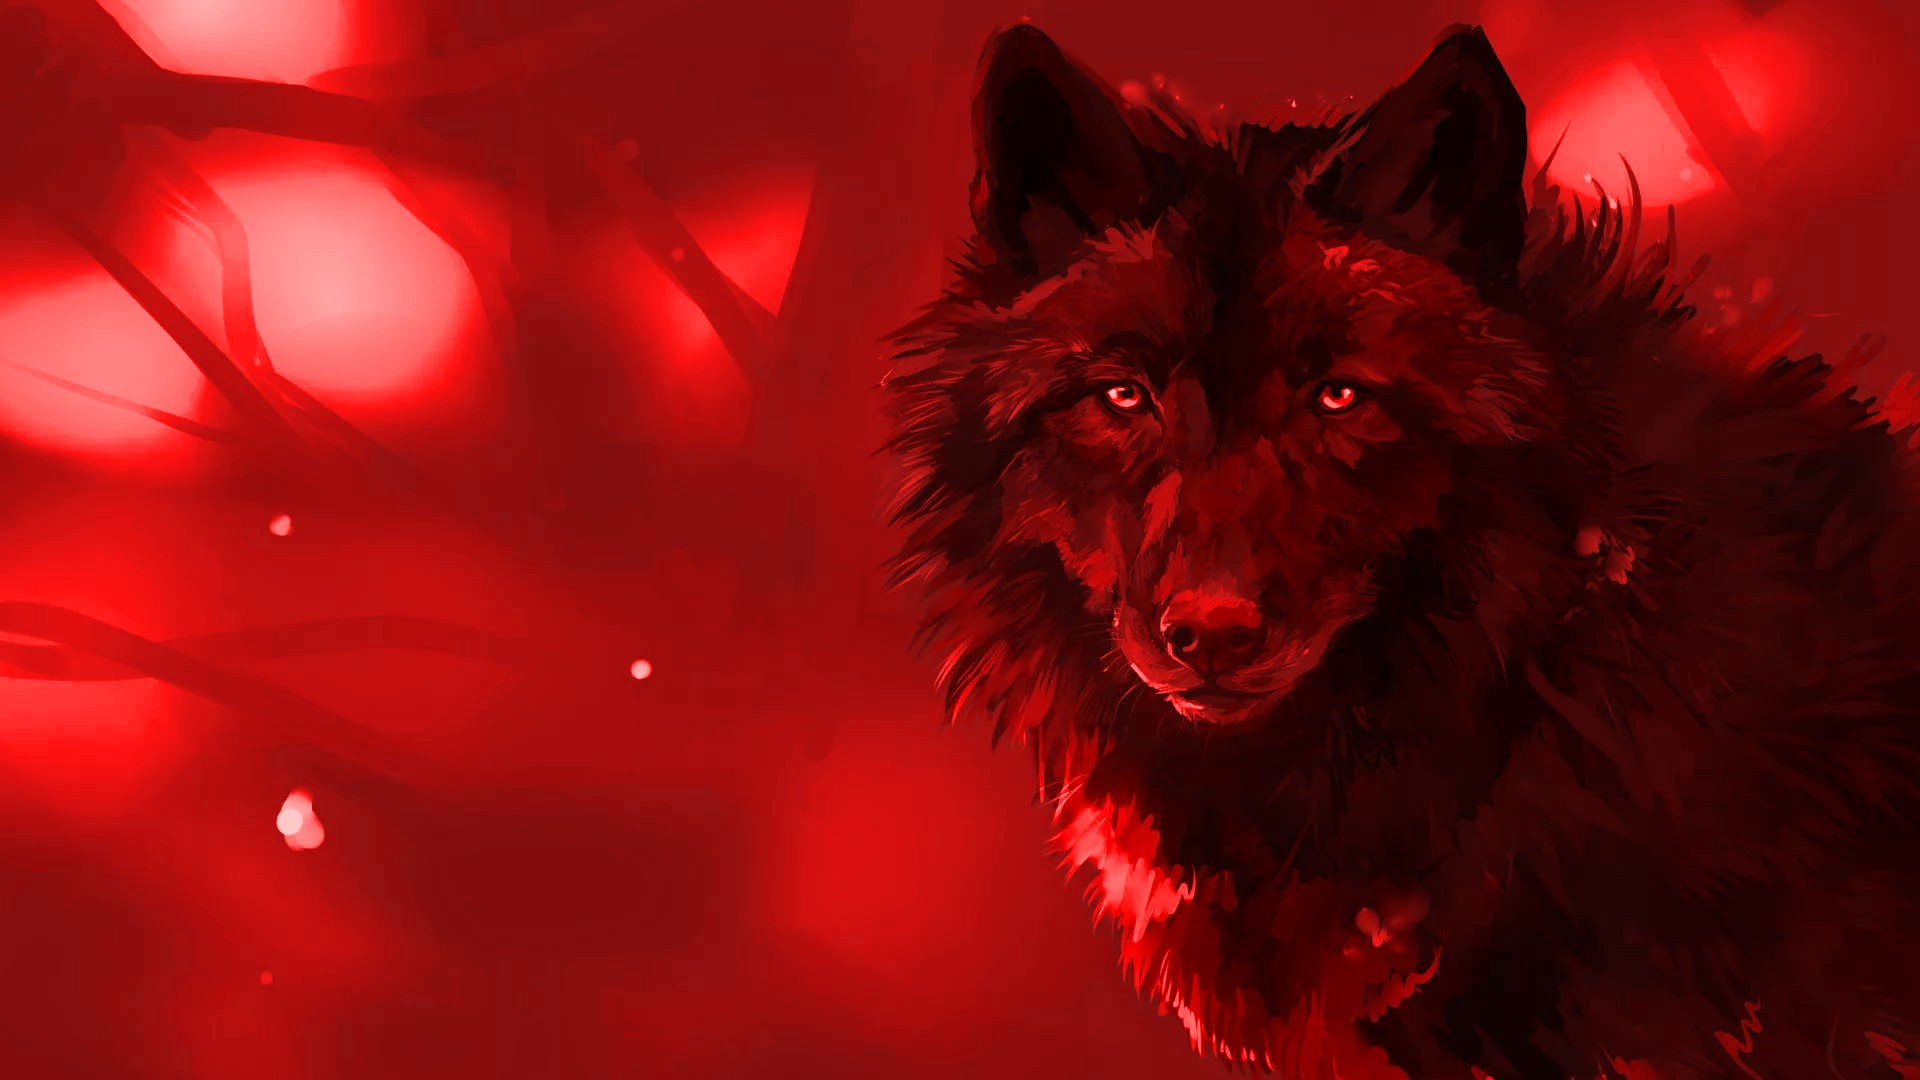 HD Cool Wolf Wallpaper With high-resolution 1920X1080 pixel. You can use and set as background for your Mac Desktop Background, Windows Screensavers, iPhone Wallpapers, Tablet or Android Lock screen and another Smartphone